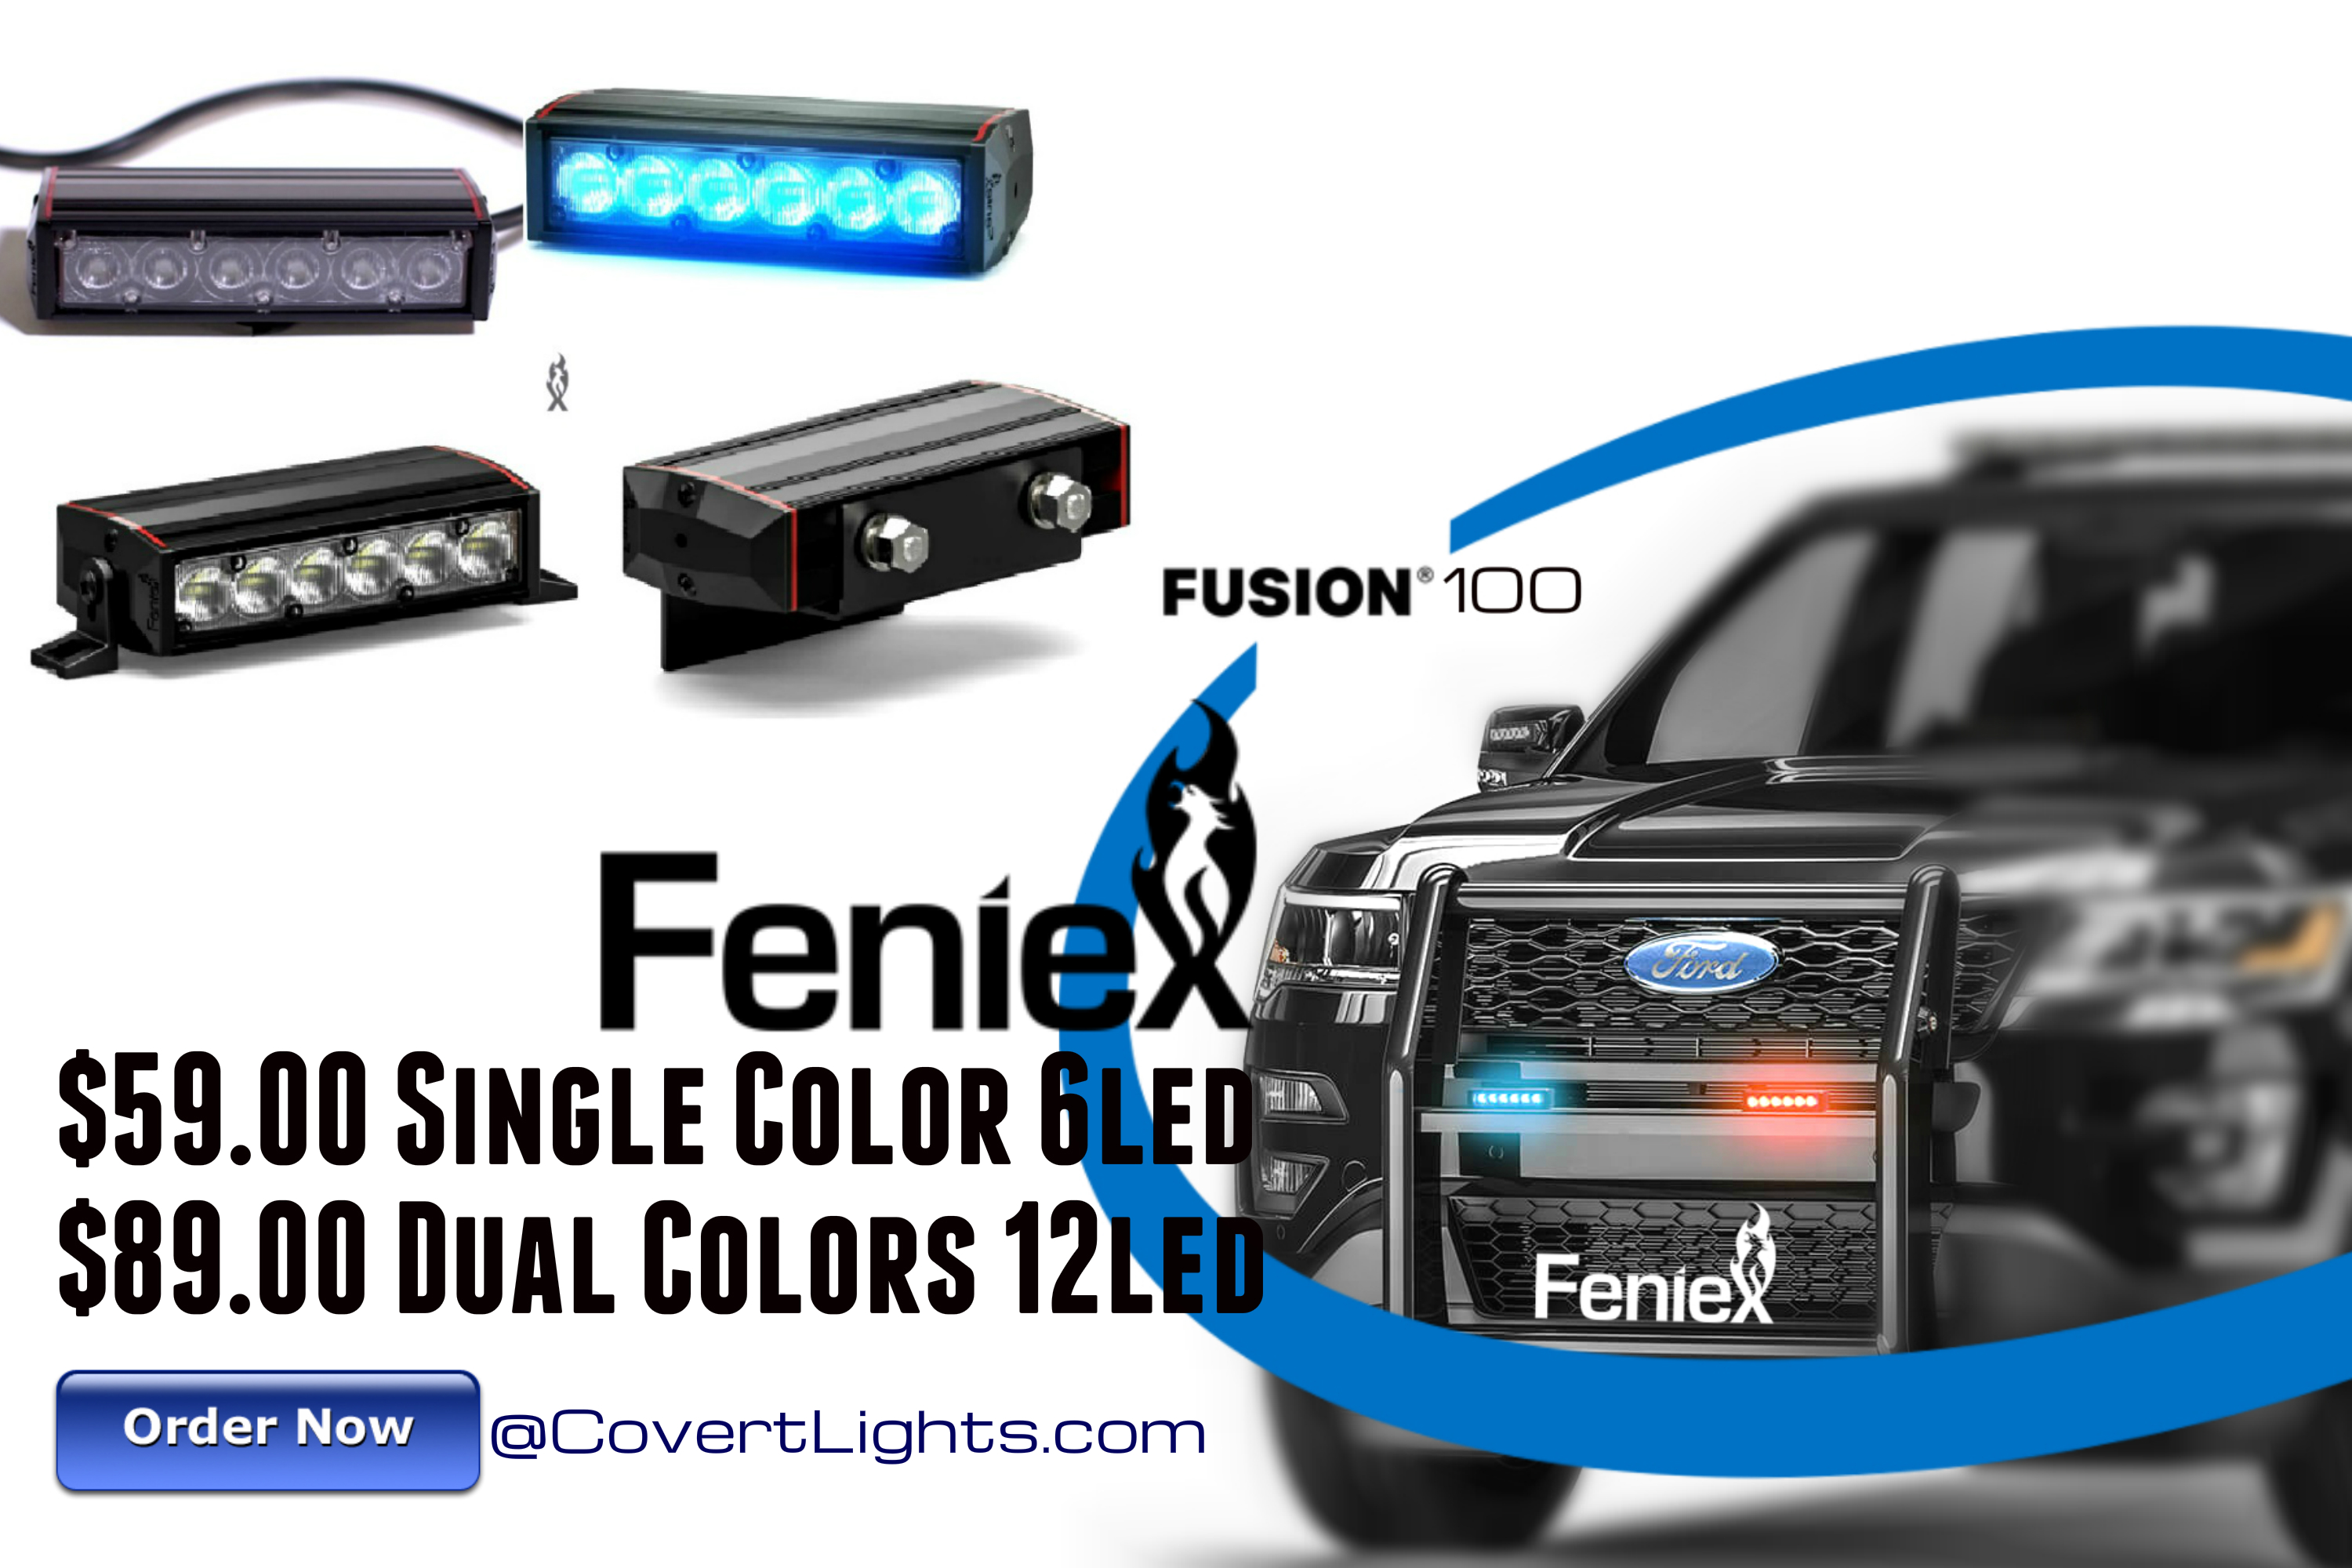 order-feniex-fusion-100-sticks-at-covertlights.jpg